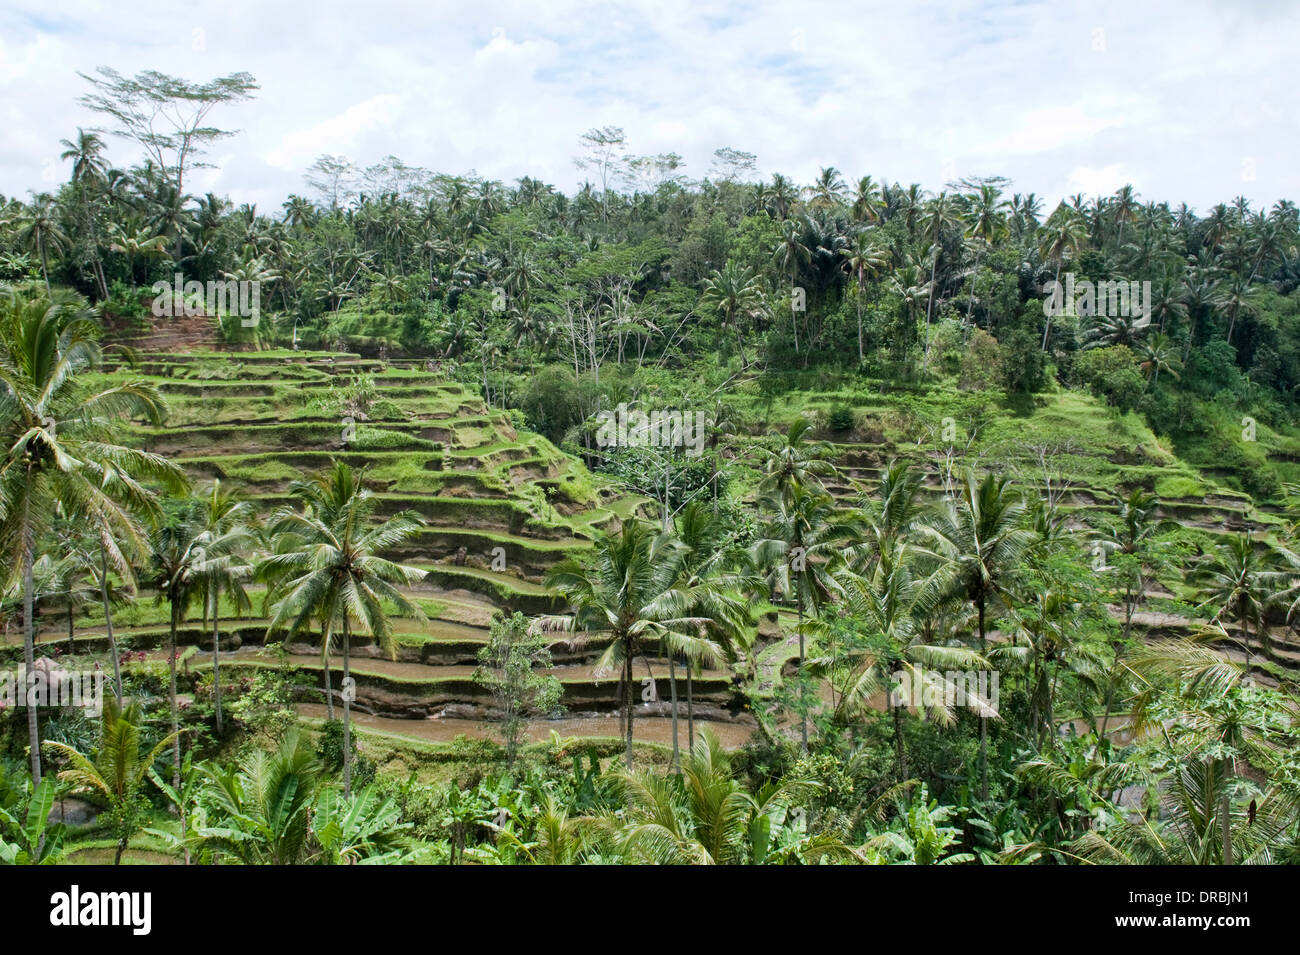 Terraced fields in Tegallalang, Bali, Indonesia - Stock Image